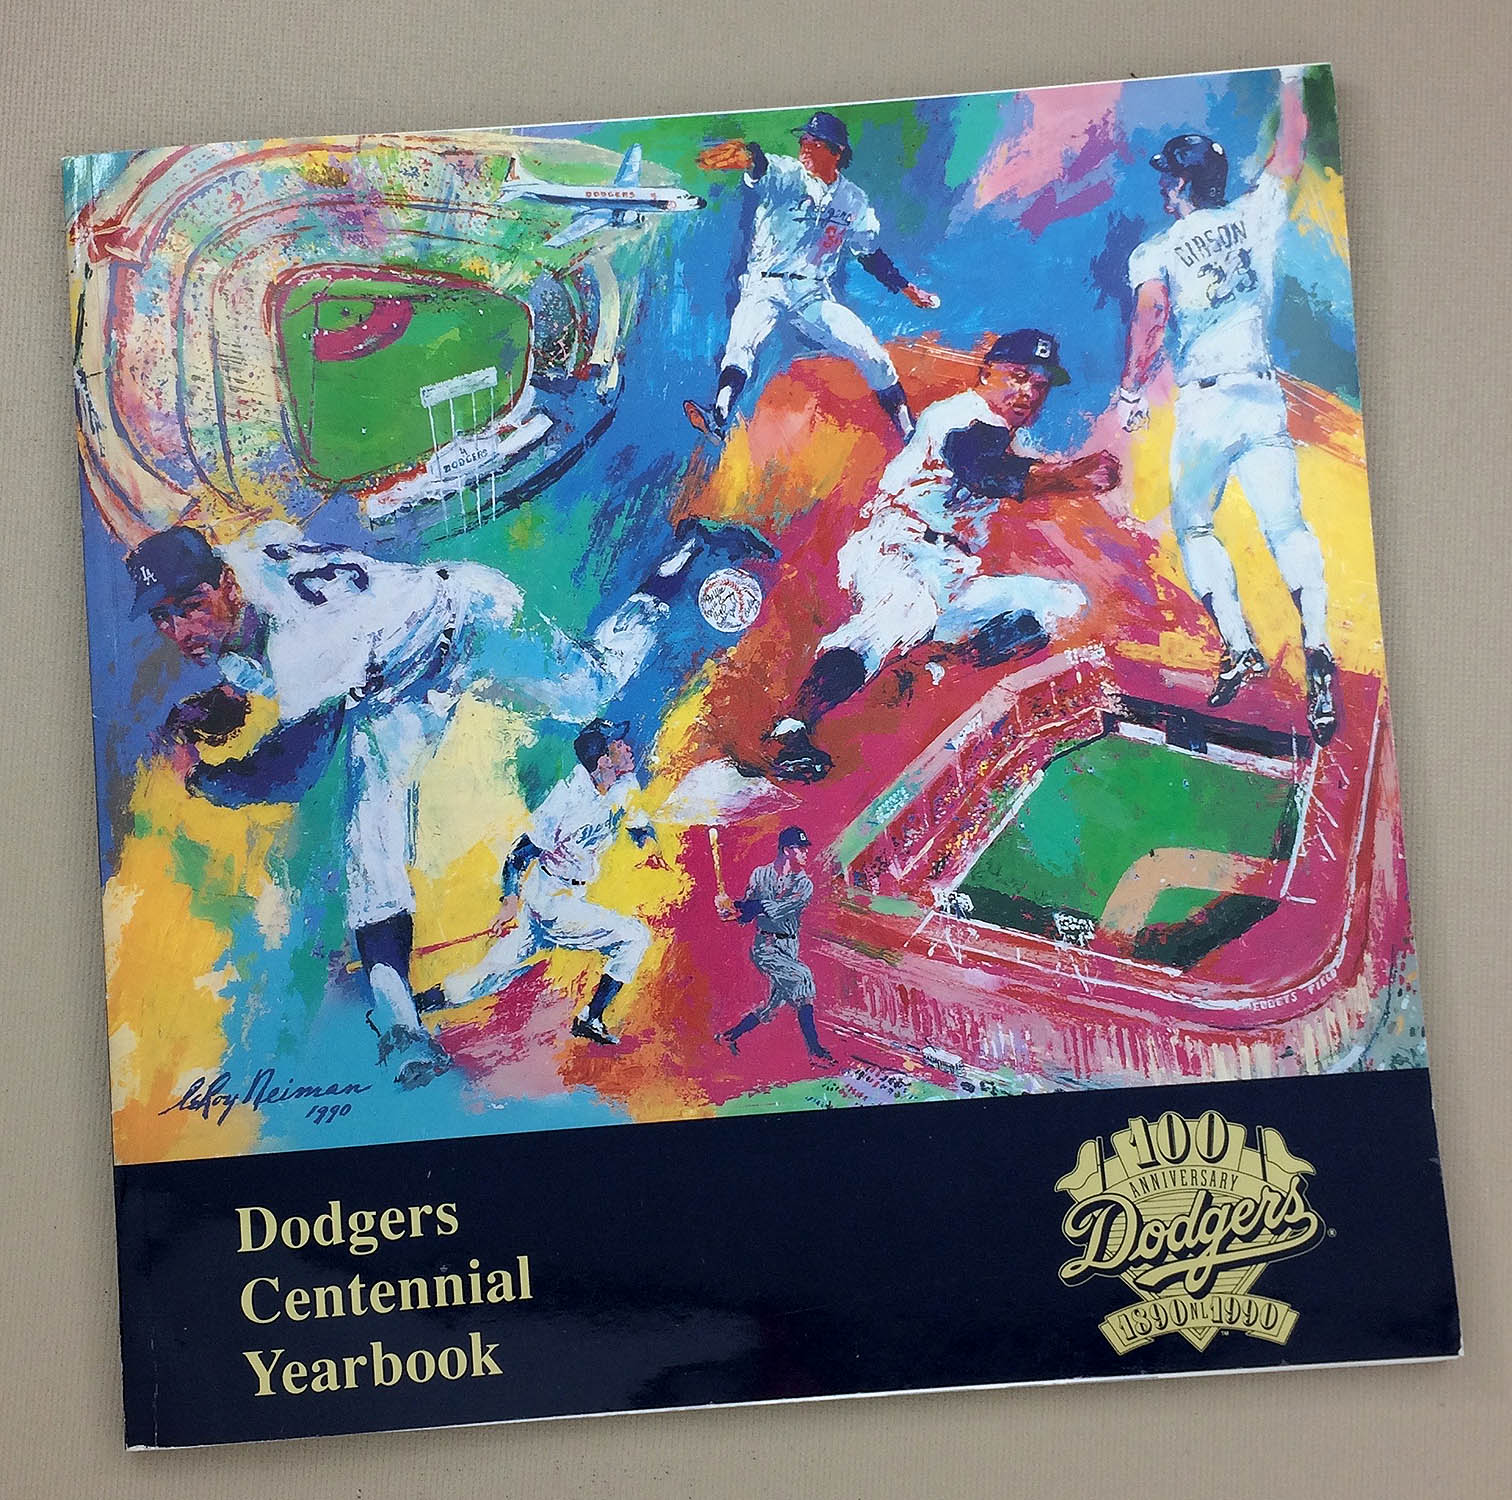 Dodgers Centennial Yearbook